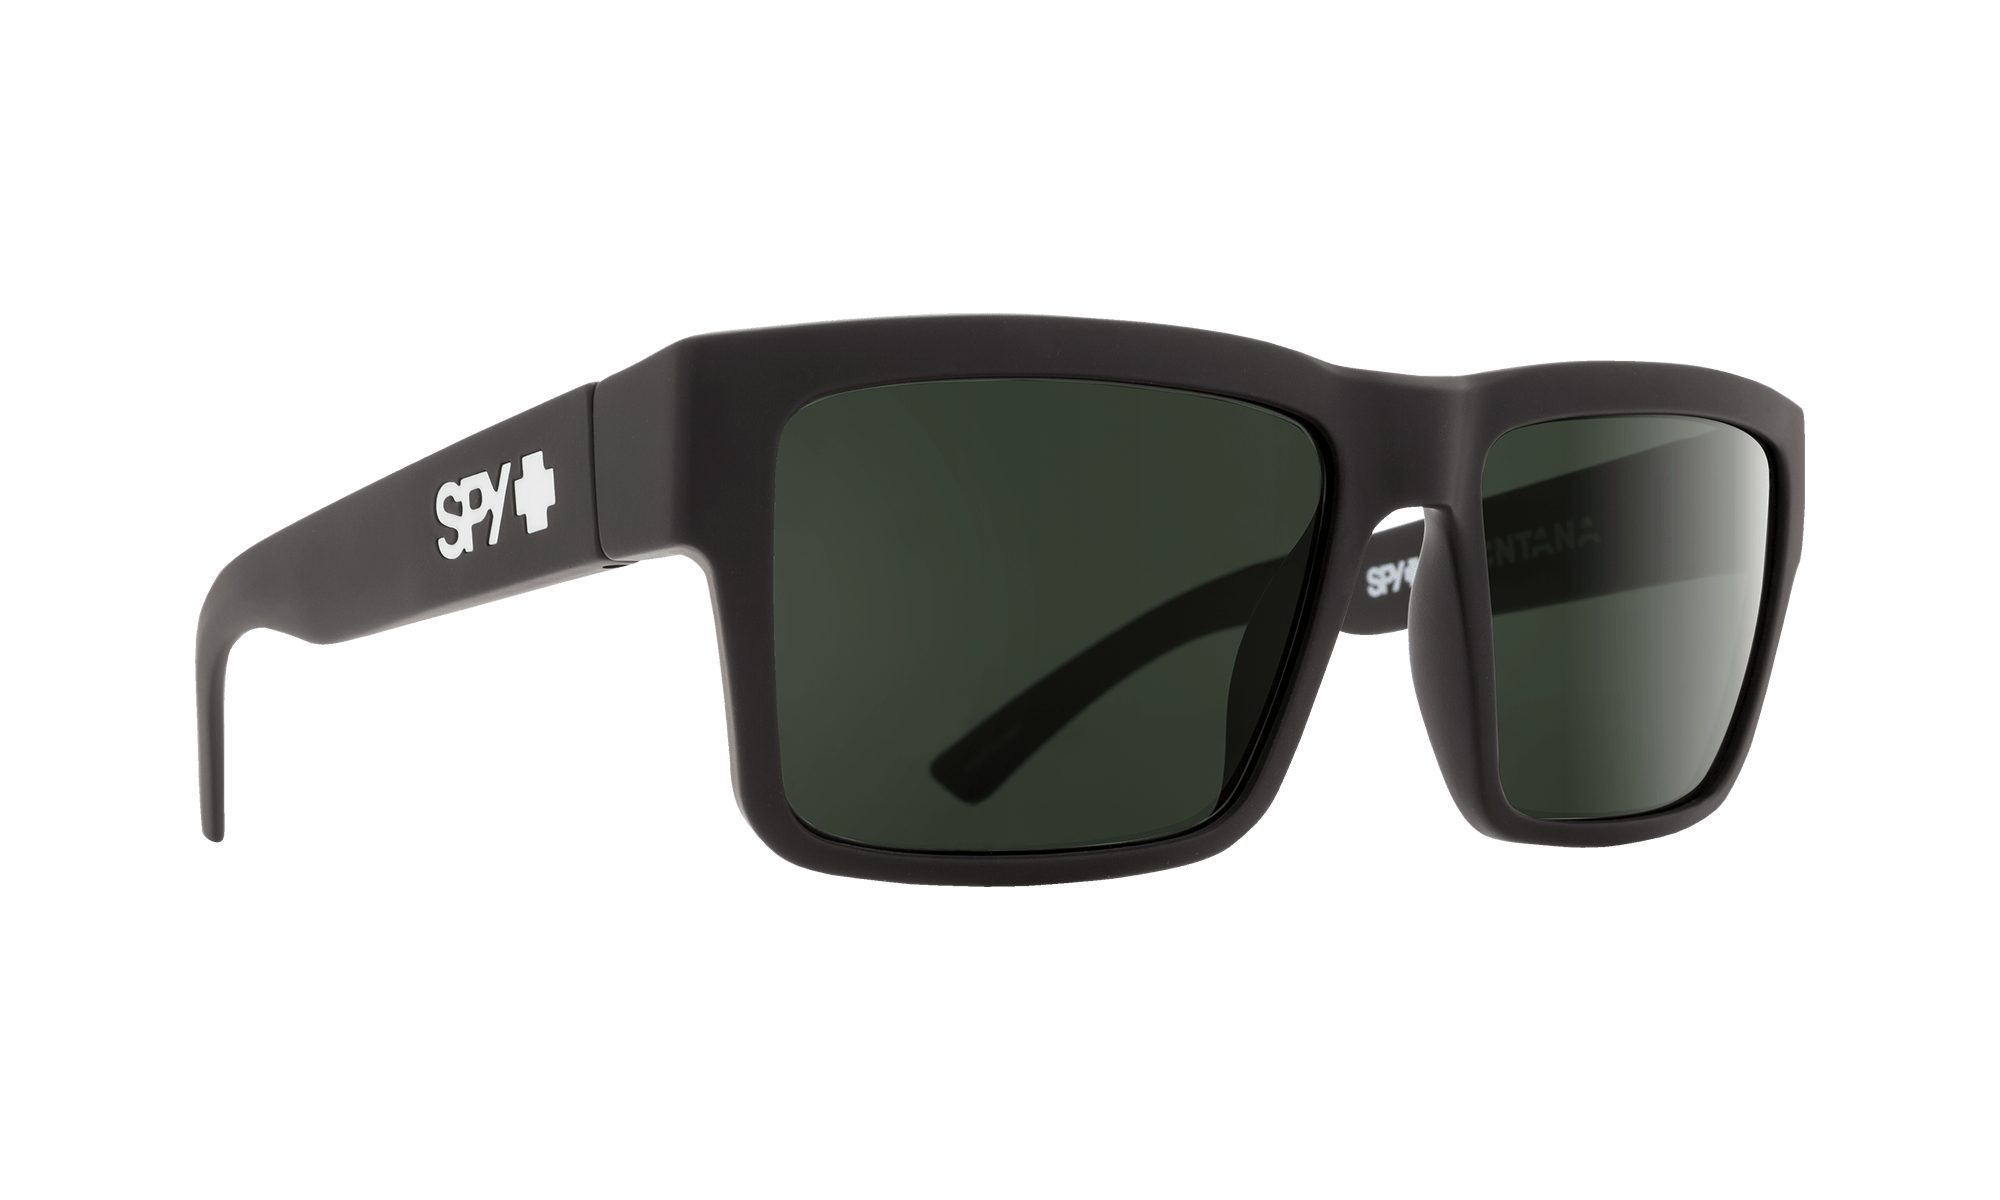 SPY Montana  Sunglasses  Happy Gray Green  a medium 54-16-140